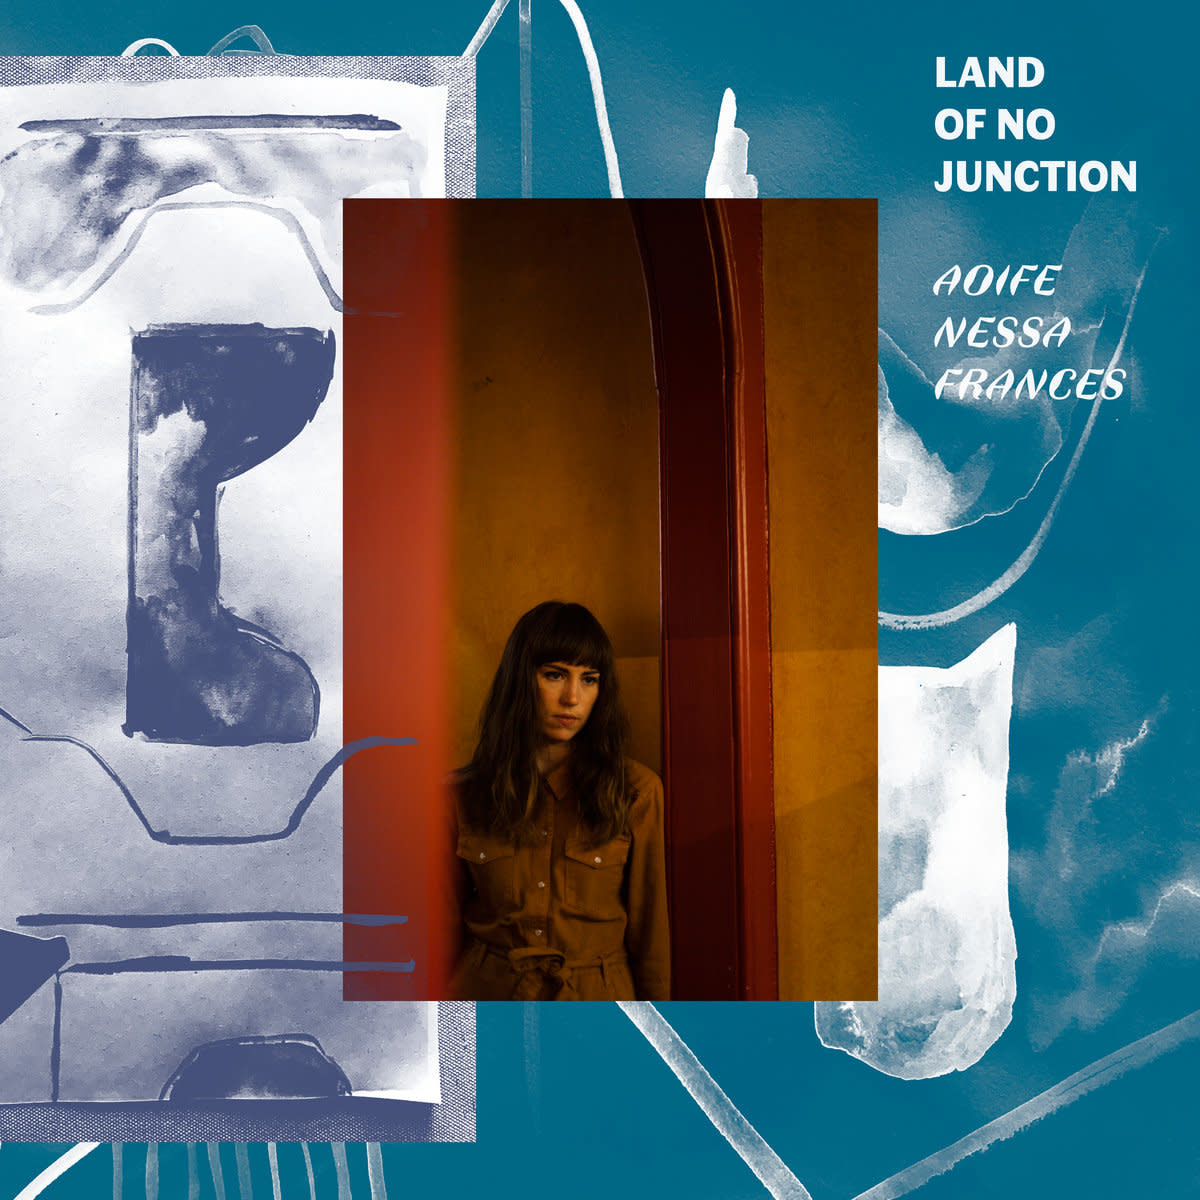 Basin Rock Aoife Nessa Frances - Land Of No Junction (Love Record Stores Version)